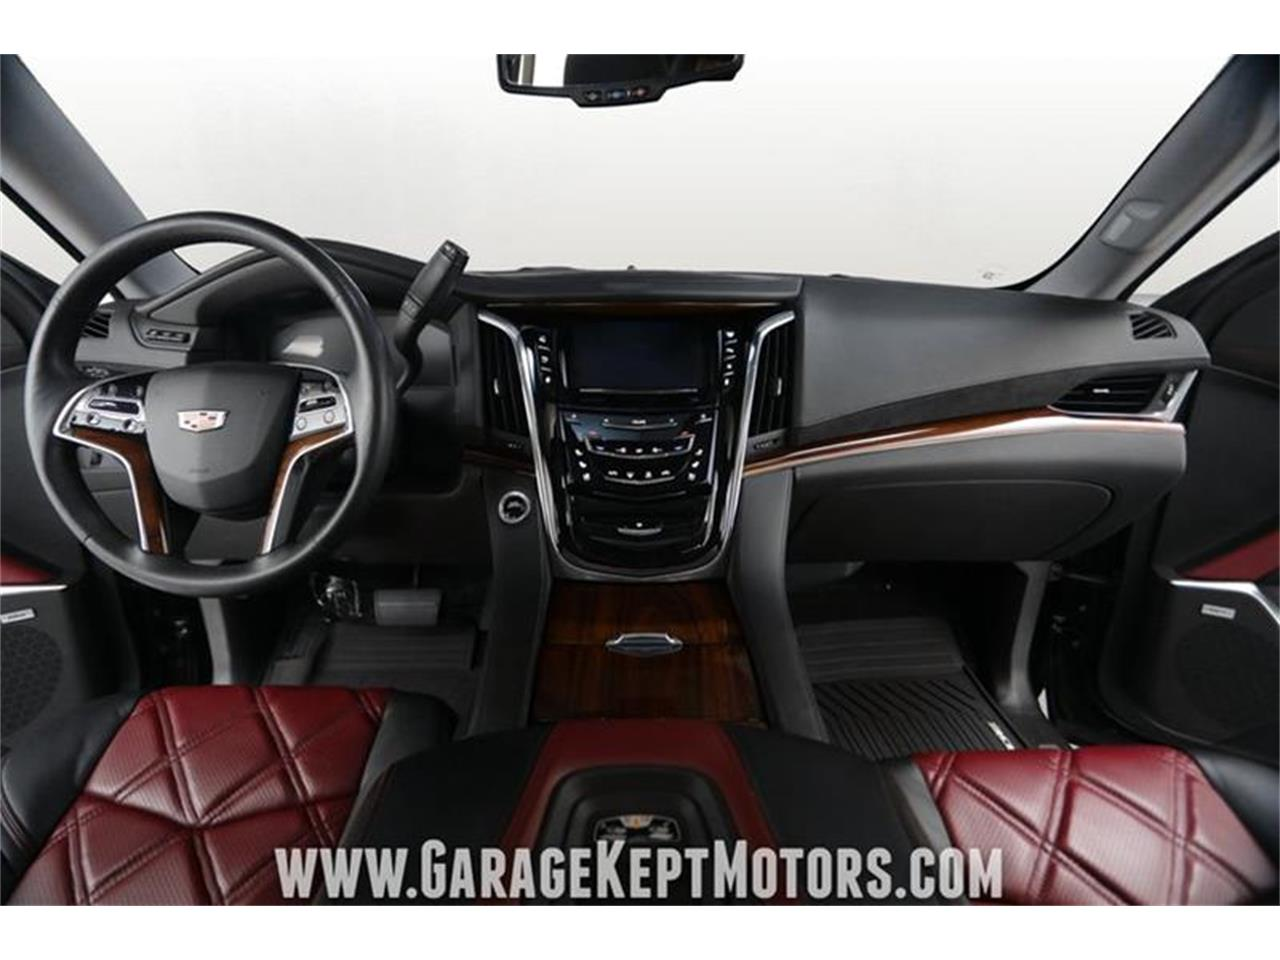 2015 Cadillac Escalade for sale in Grand Rapids, MI – photo 21